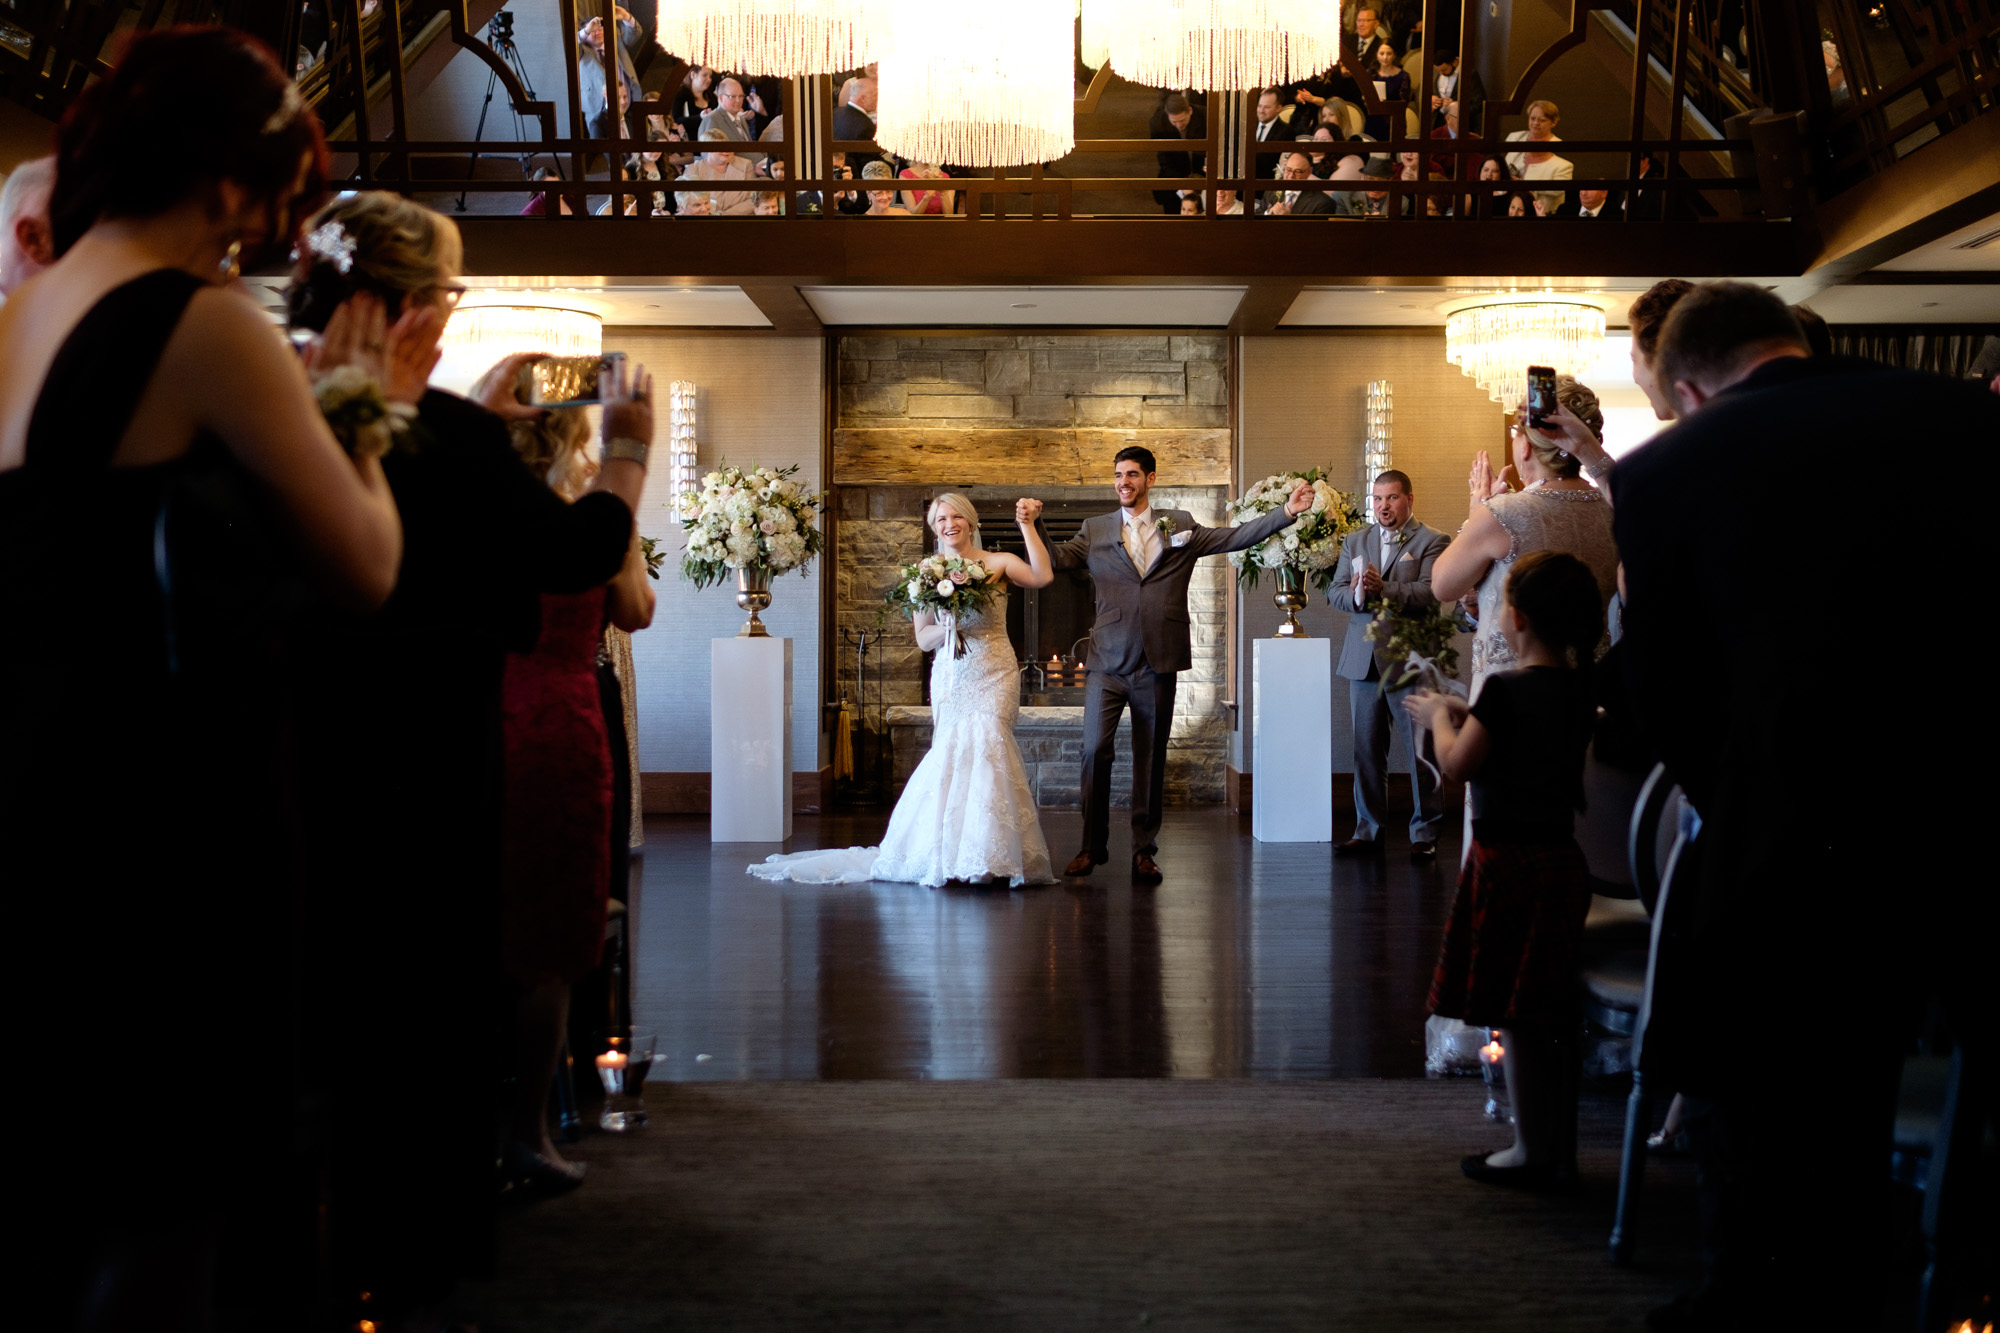 Sarah and Rob celebrate with their guests after their wedding ceremony at Whistle Bear in Cambridge, Ontario.